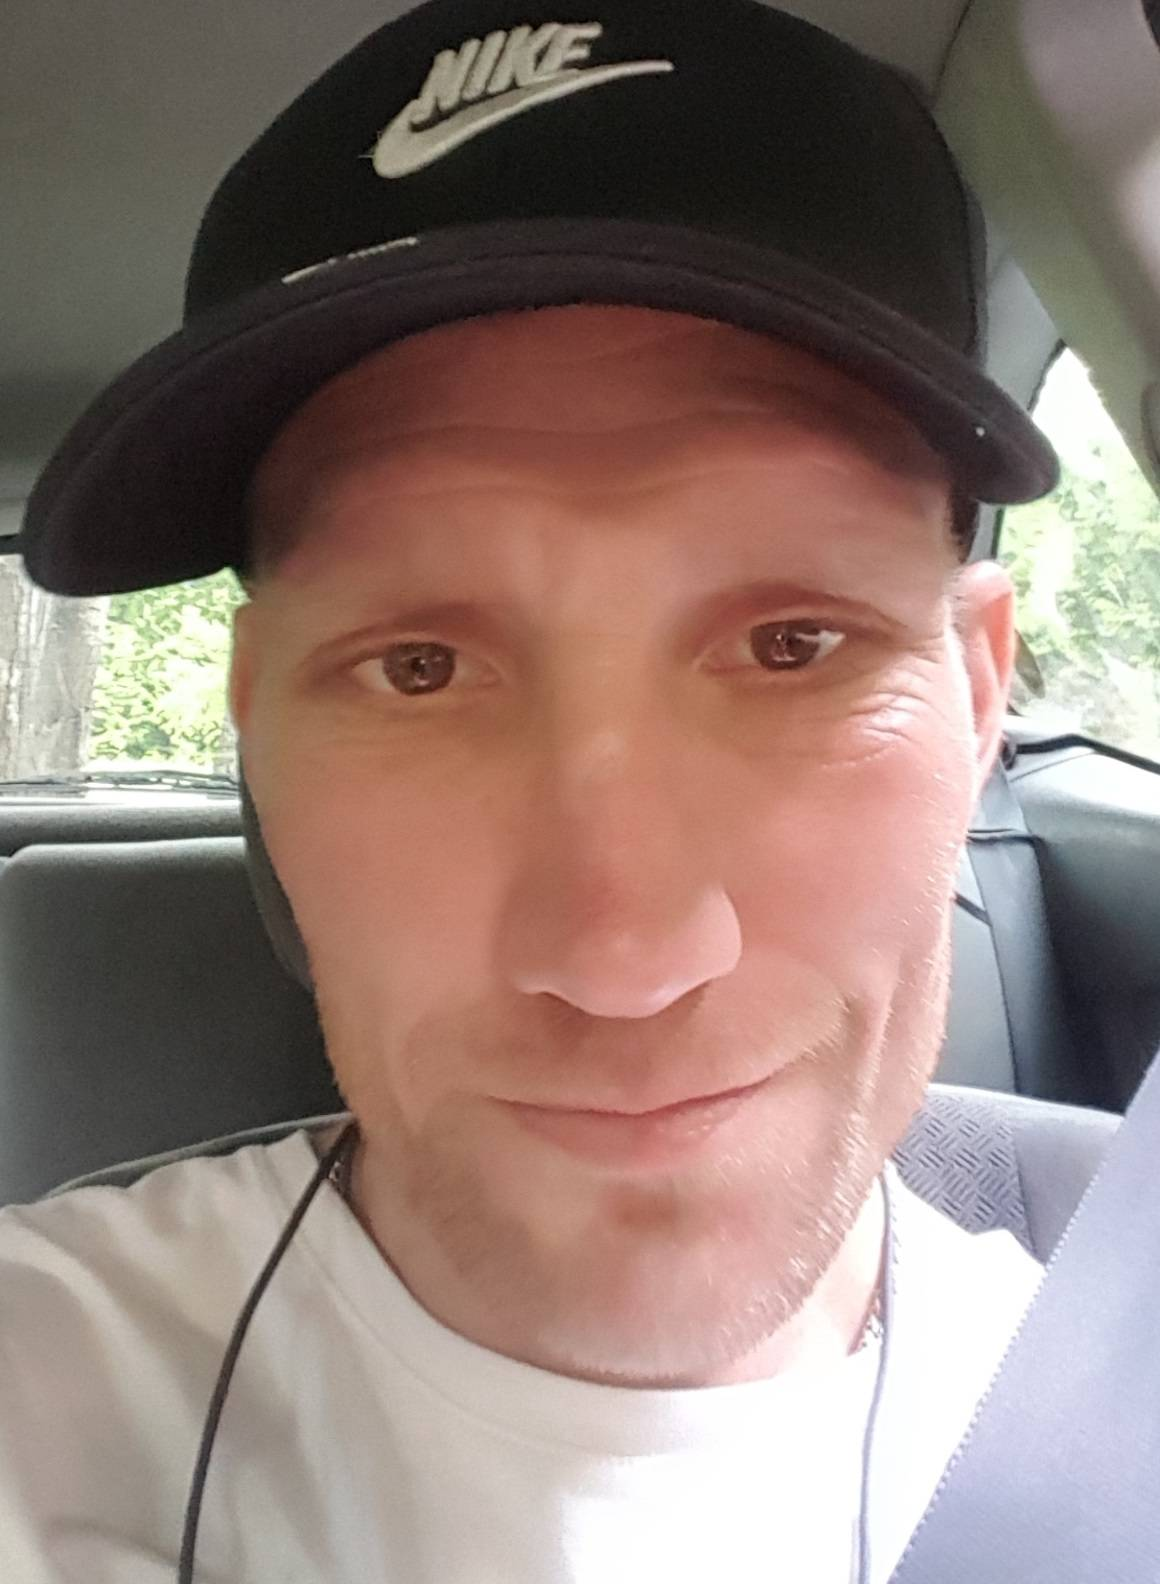 A Surrey man is the victim of the Lower Mainland's latest homicide. Kenneth Thomas Howe, 38, was found in the 6200-block of Darnley Street in Burnaby on Aug. 12 around 6 a.m. (Photo: IHIT)